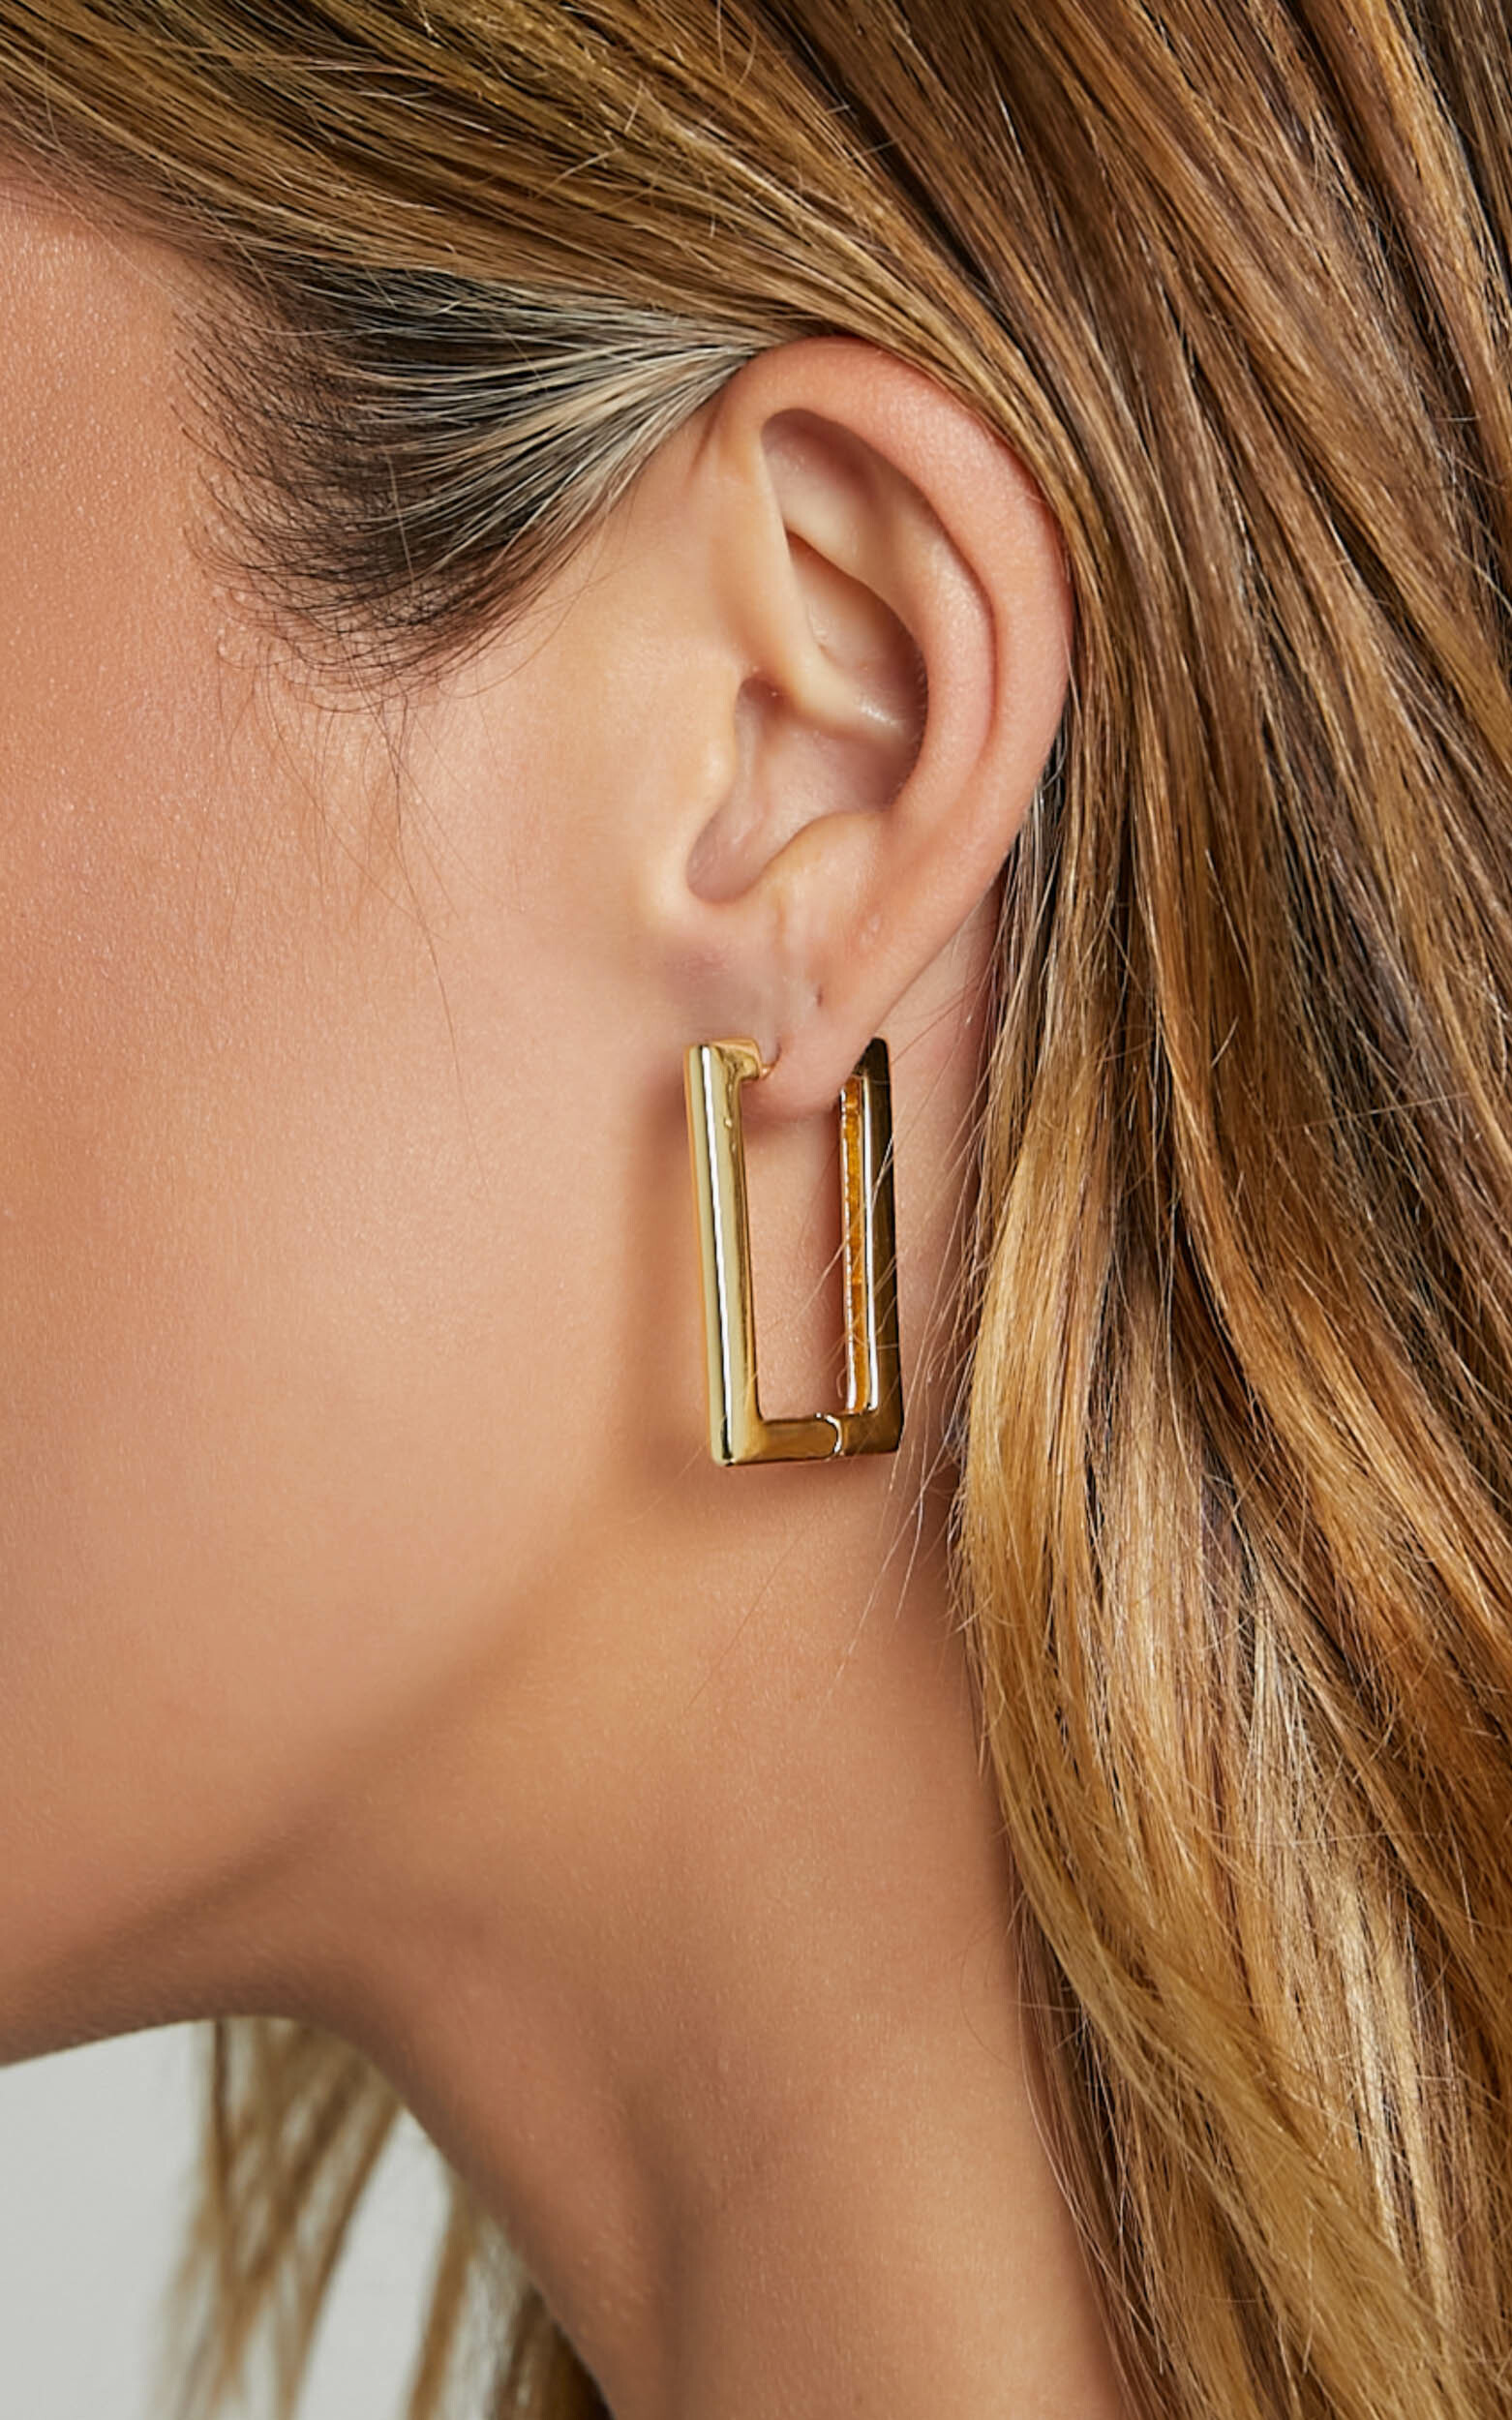 Twylah Earrings in Gold - NoSize, GLD1, hi-res image number null